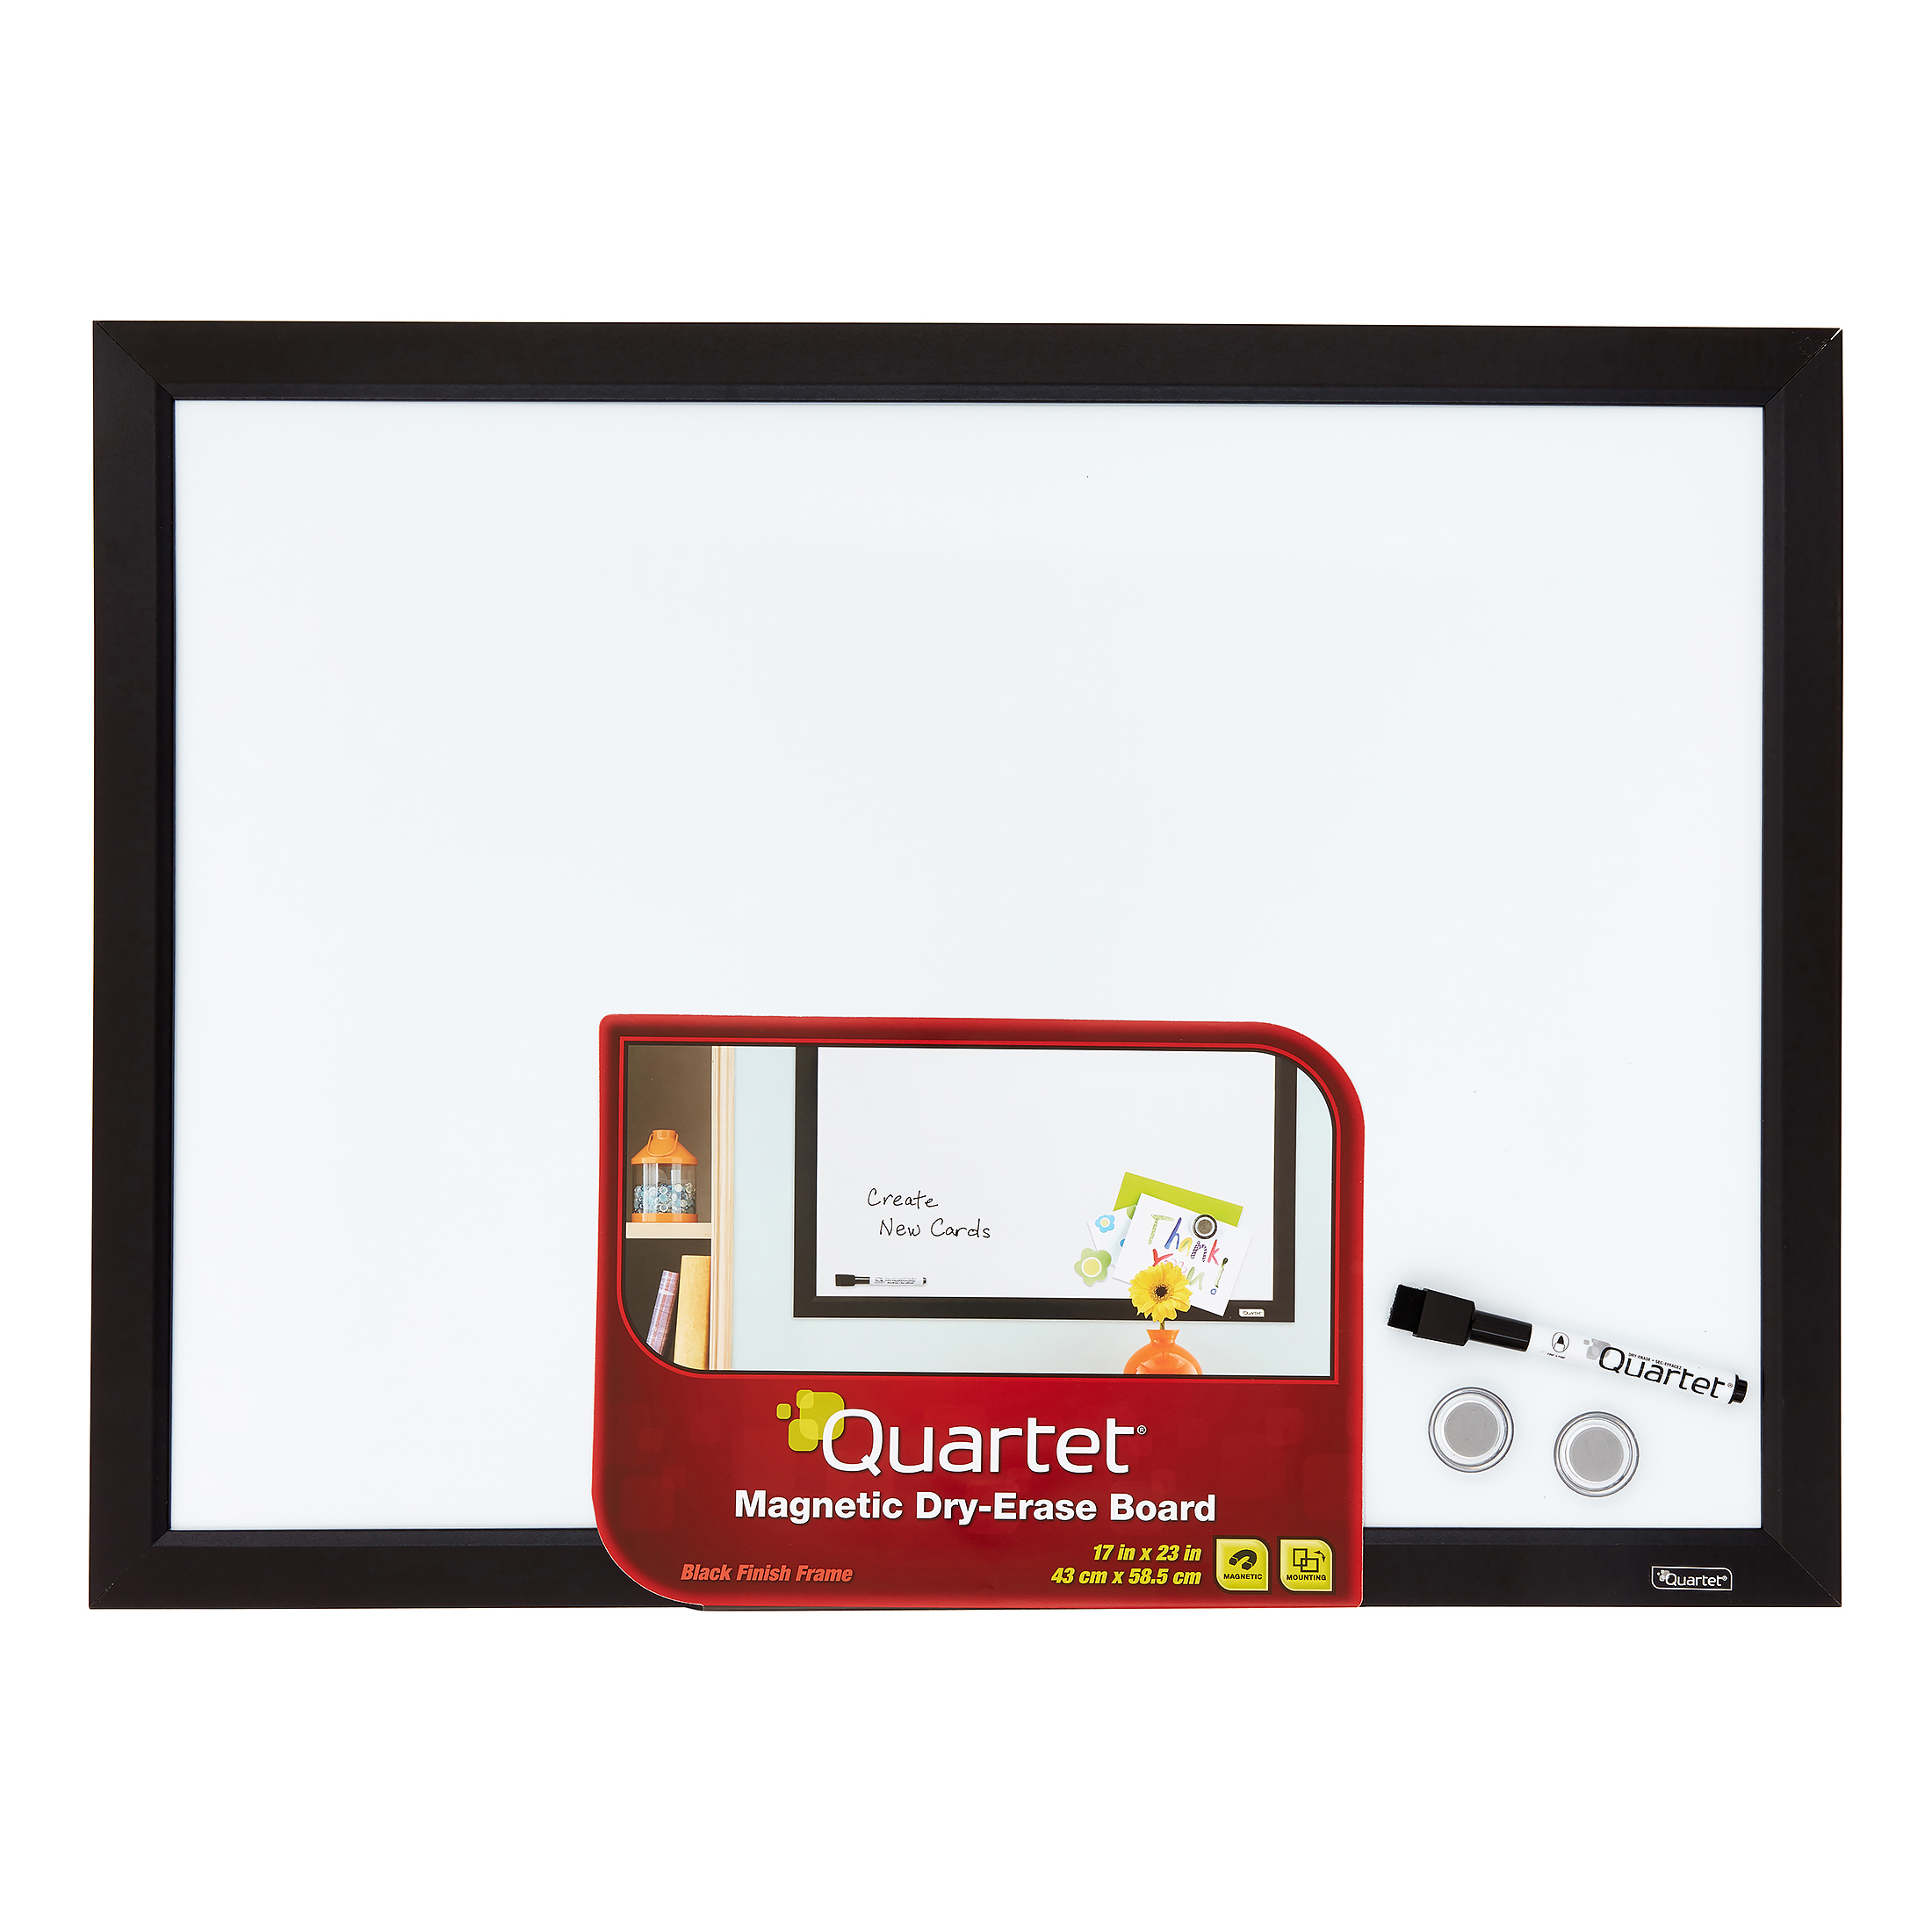 """Quartet Magnetic Dry-Erase Board, 17"""" x 23\ by ACCO BRANDS"""